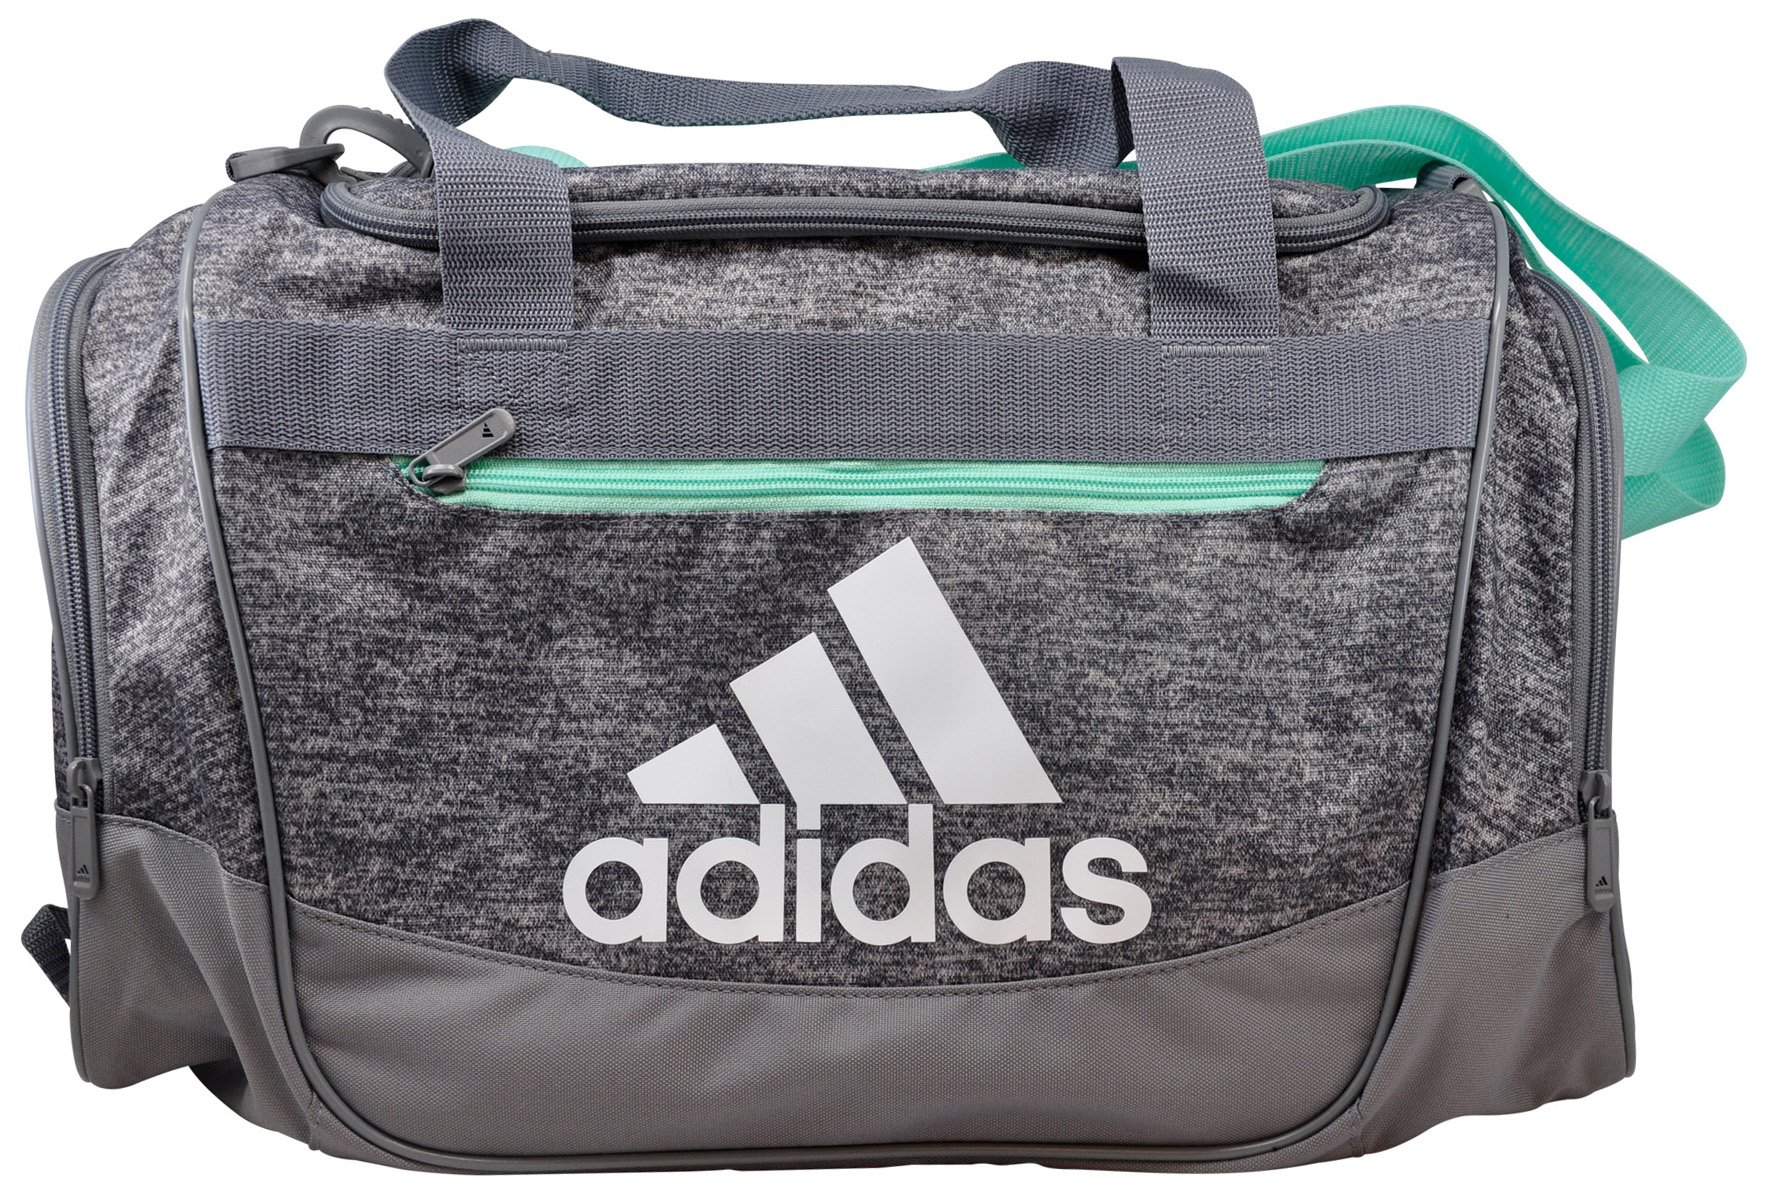 adidas Defender III Duffel Bag (Small, Onix Jersey/Grey/Easy Green/White)